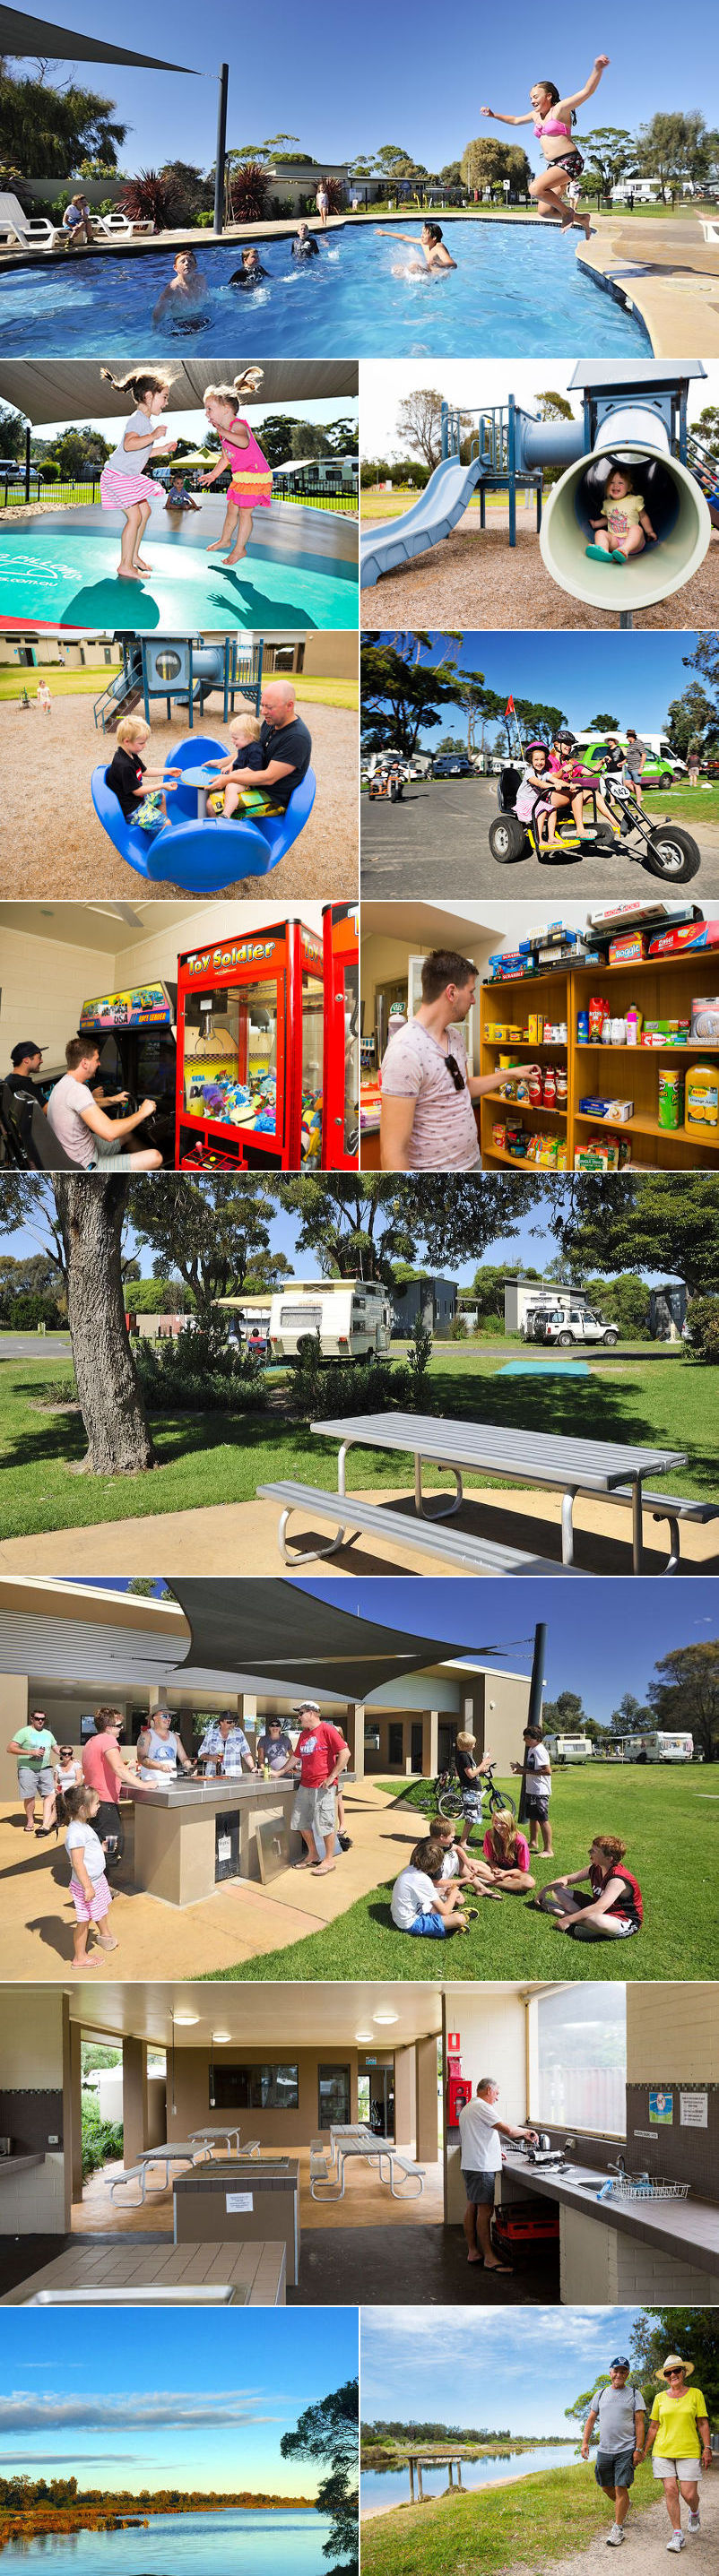 NRMA Eastern Beach Holiday Park - Grounds and facilities